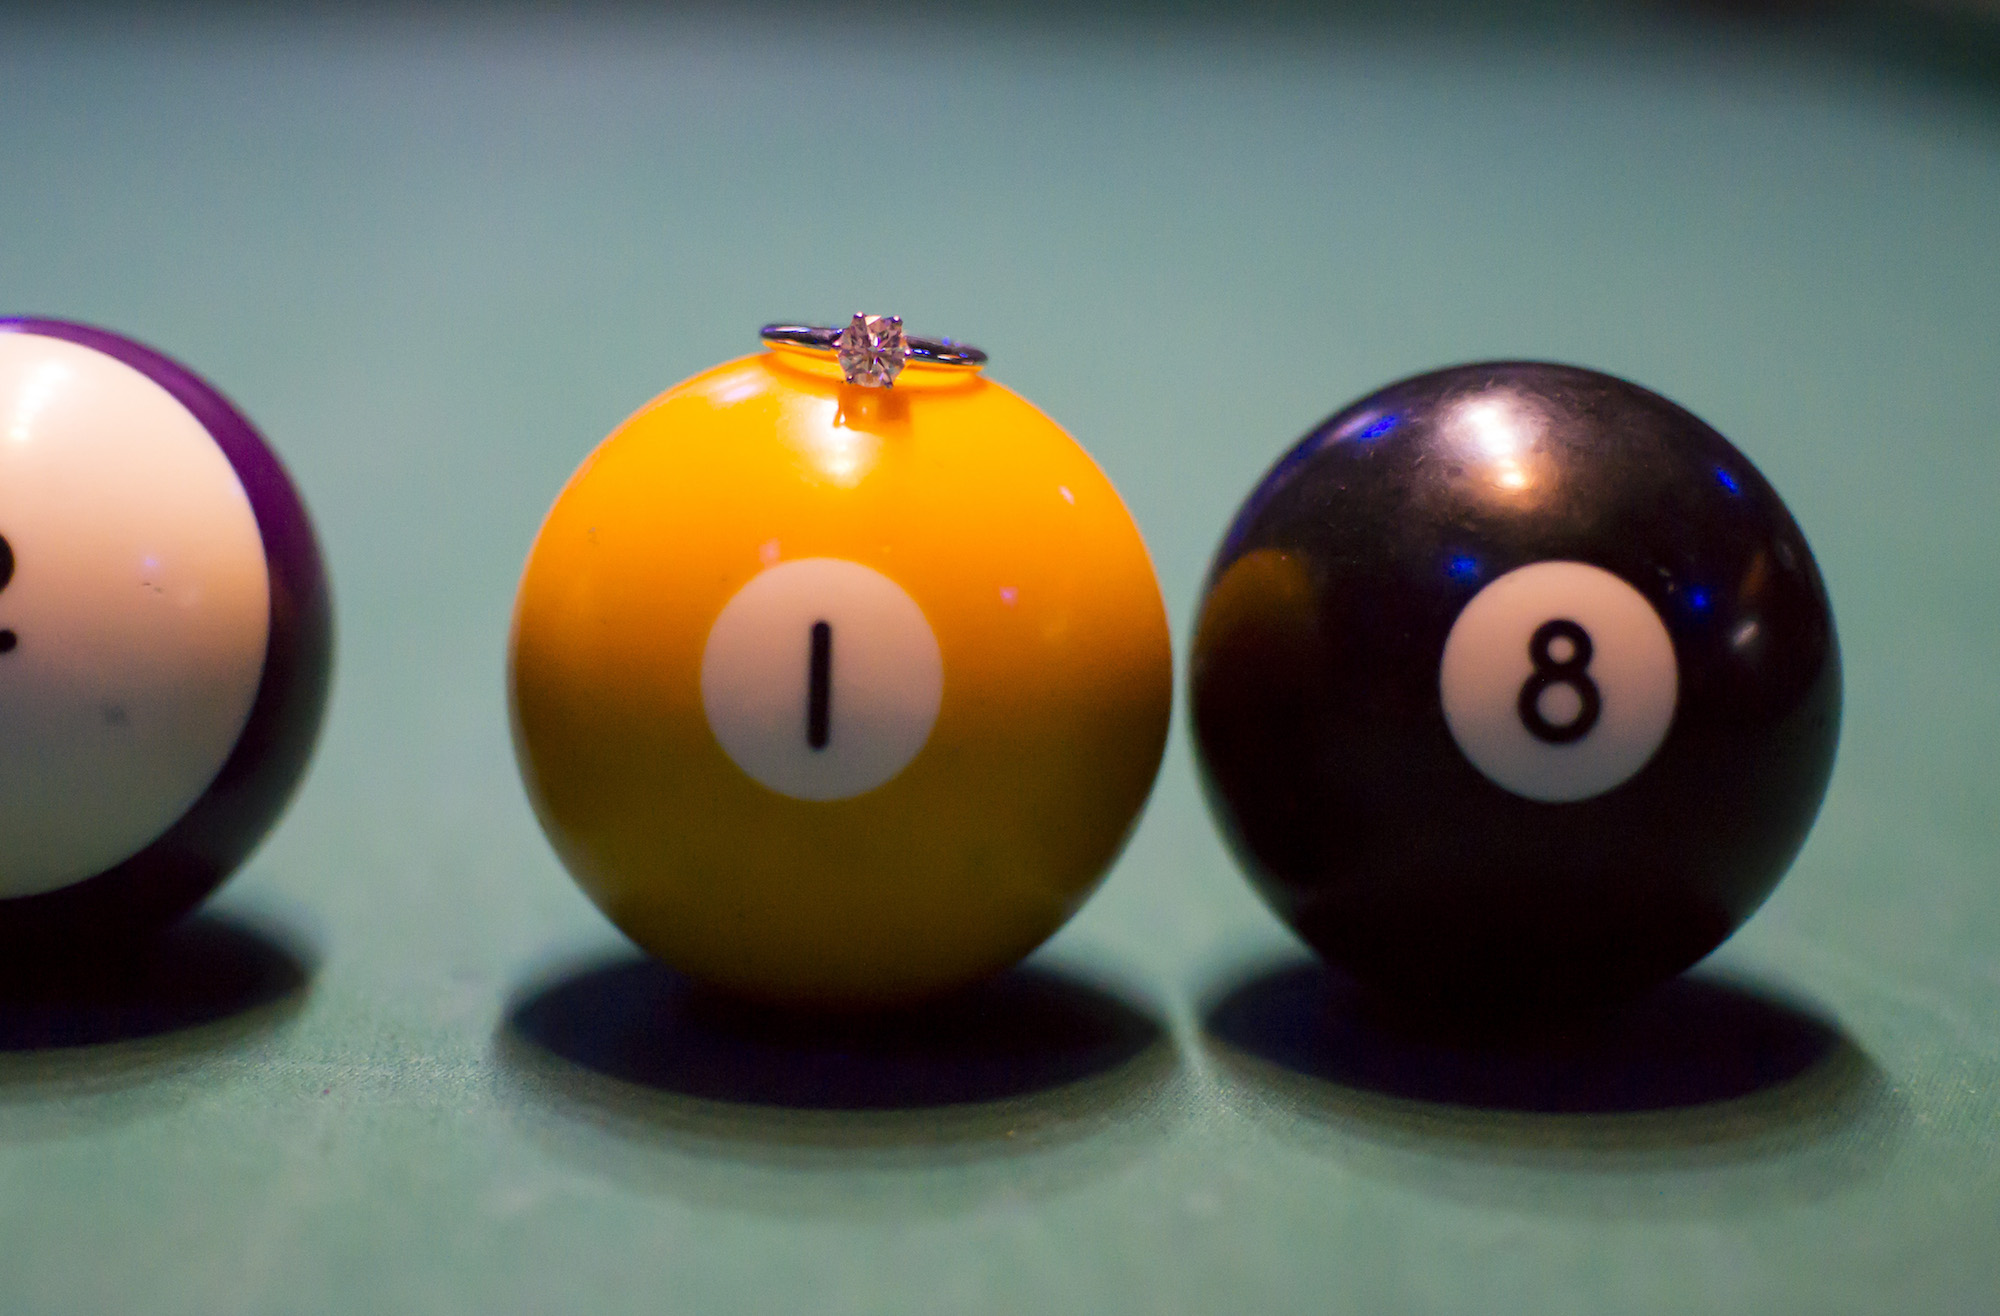 billiard ball engagement ring picture.jpg